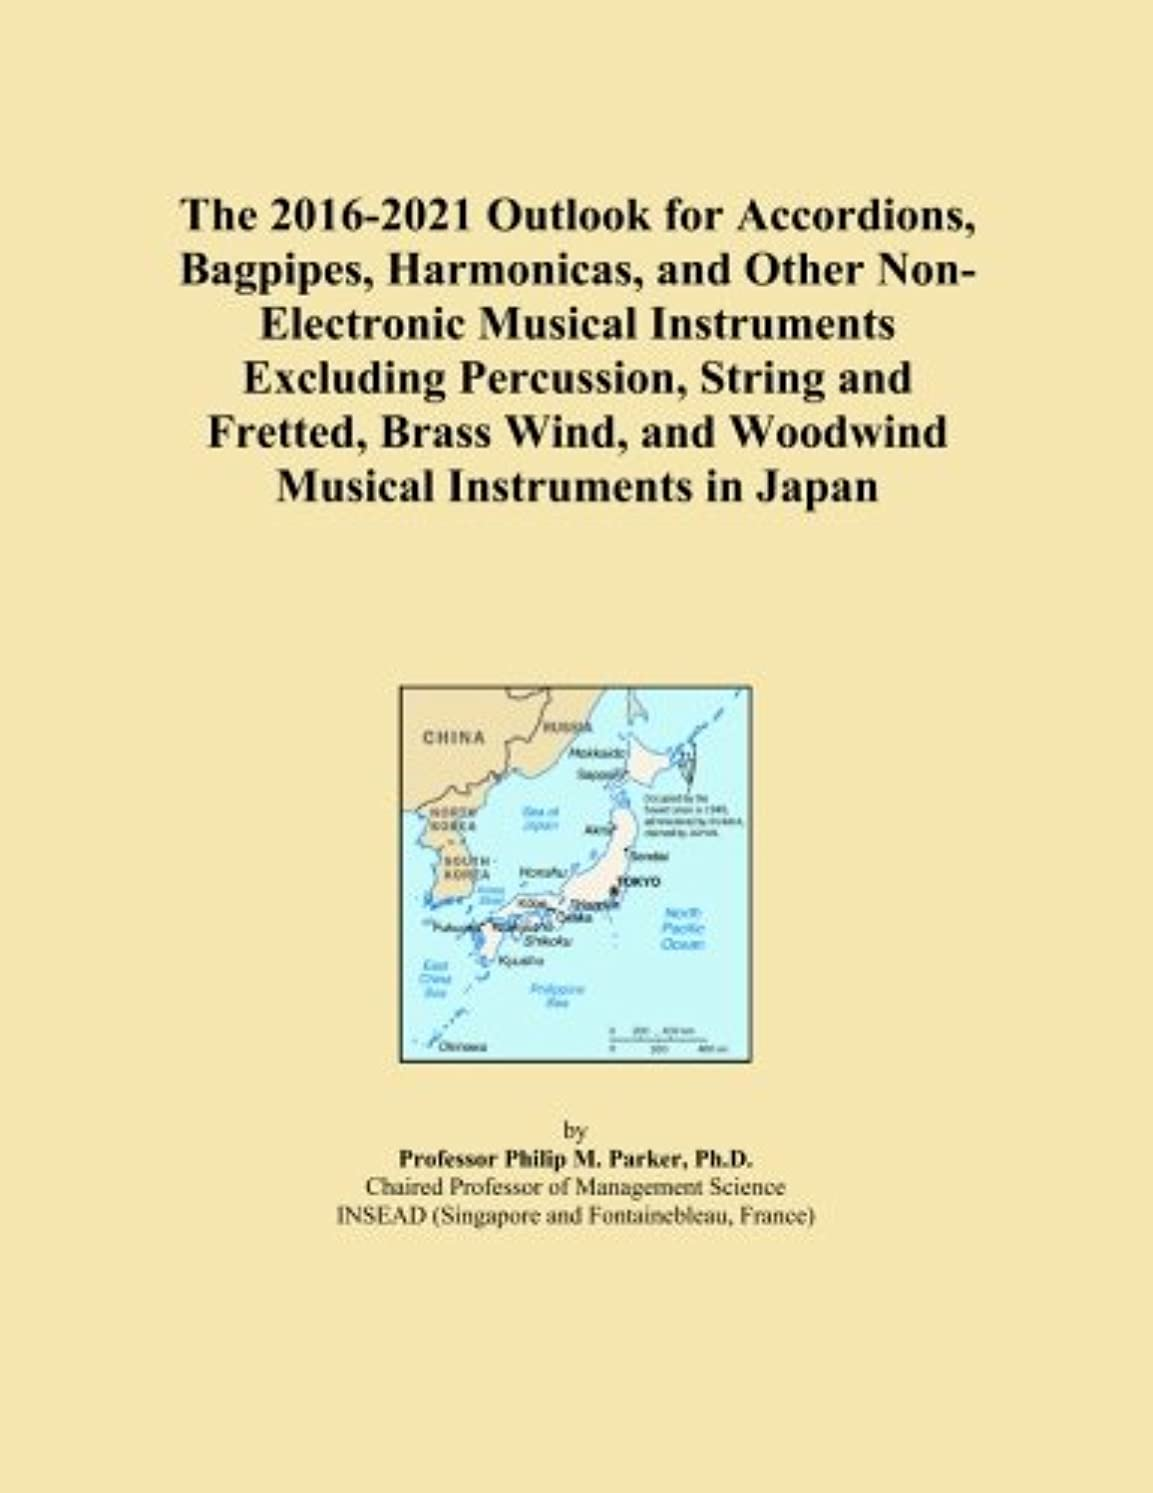 器官不和一方、The 2016-2021 Outlook for Accordions, Bagpipes, Harmonicas, and Other Non-Electronic Musical Instruments Excluding Percussion, String and Fretted, Brass Wind, and Woodwind Musical Instruments in Japan